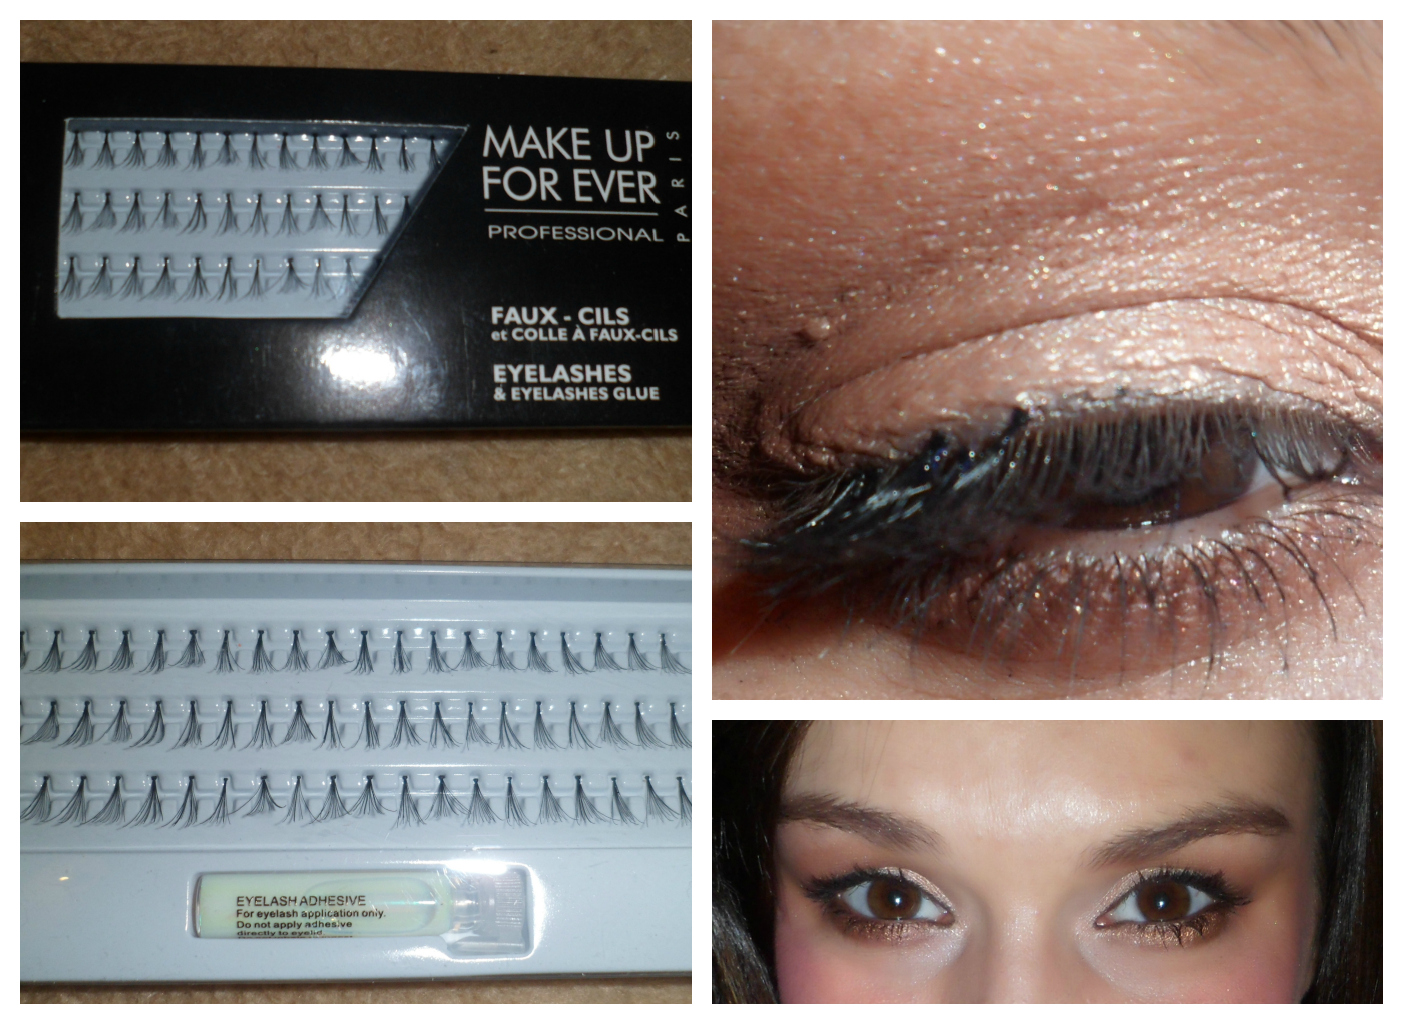 480ea59bfc8 The kit comes with a lash glue and 3 rows of black medium flare lashes. All the  lashes are knotted, which can be covered up easily with eyeliner.